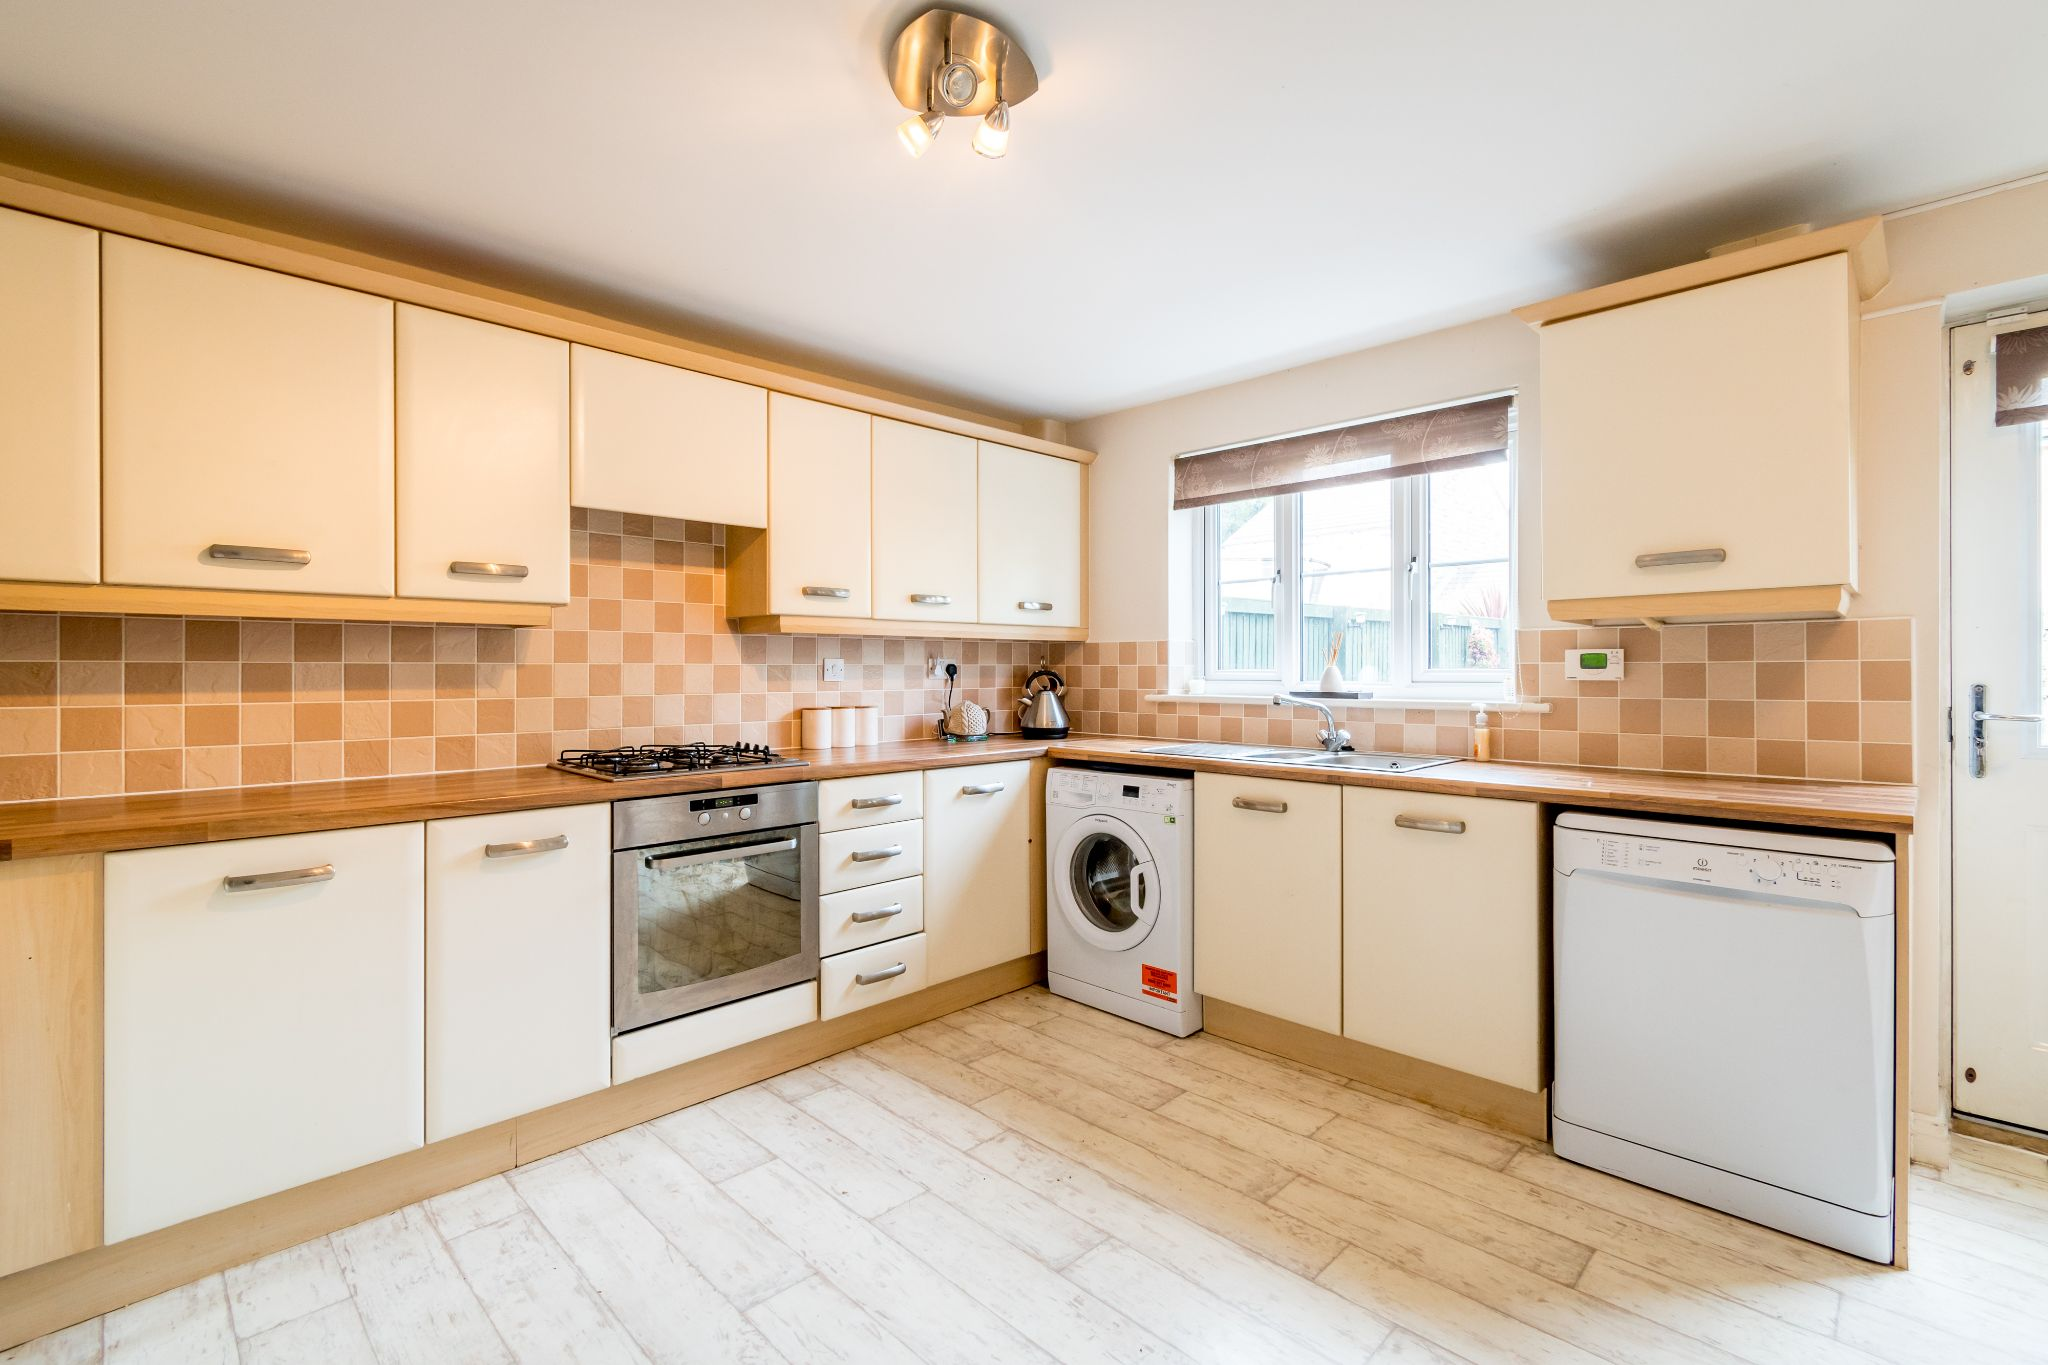 4 bedroom mid terraced house SSTC in Brighouse - Photograph 8